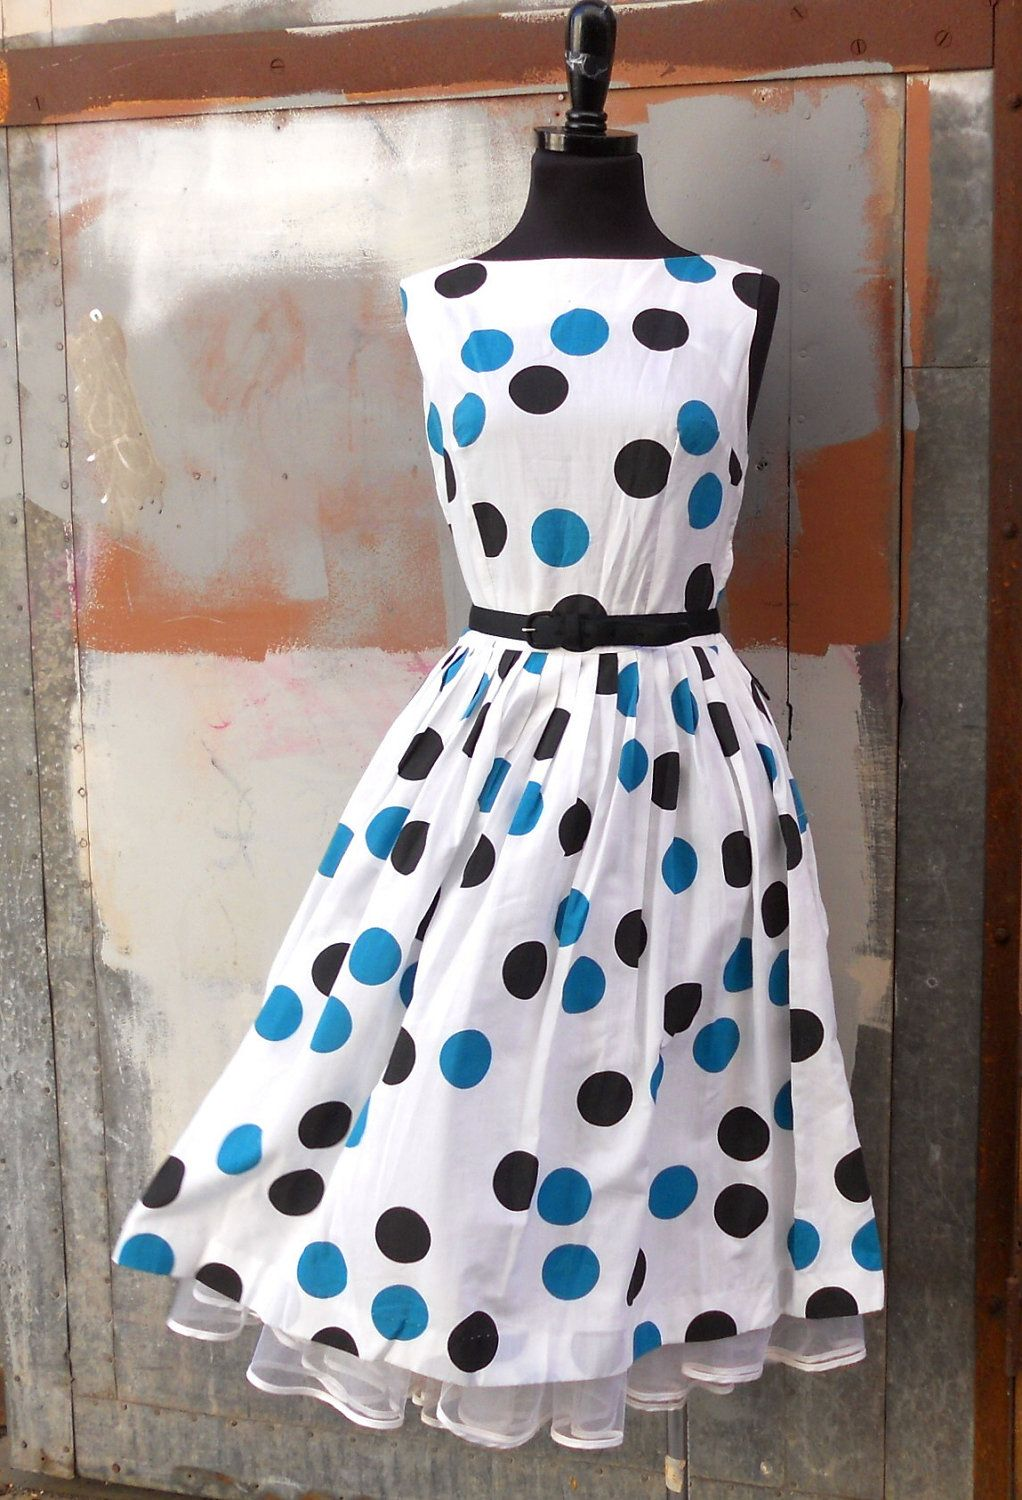 Polka dots sewing projects pinterest ponytail silhouettes and